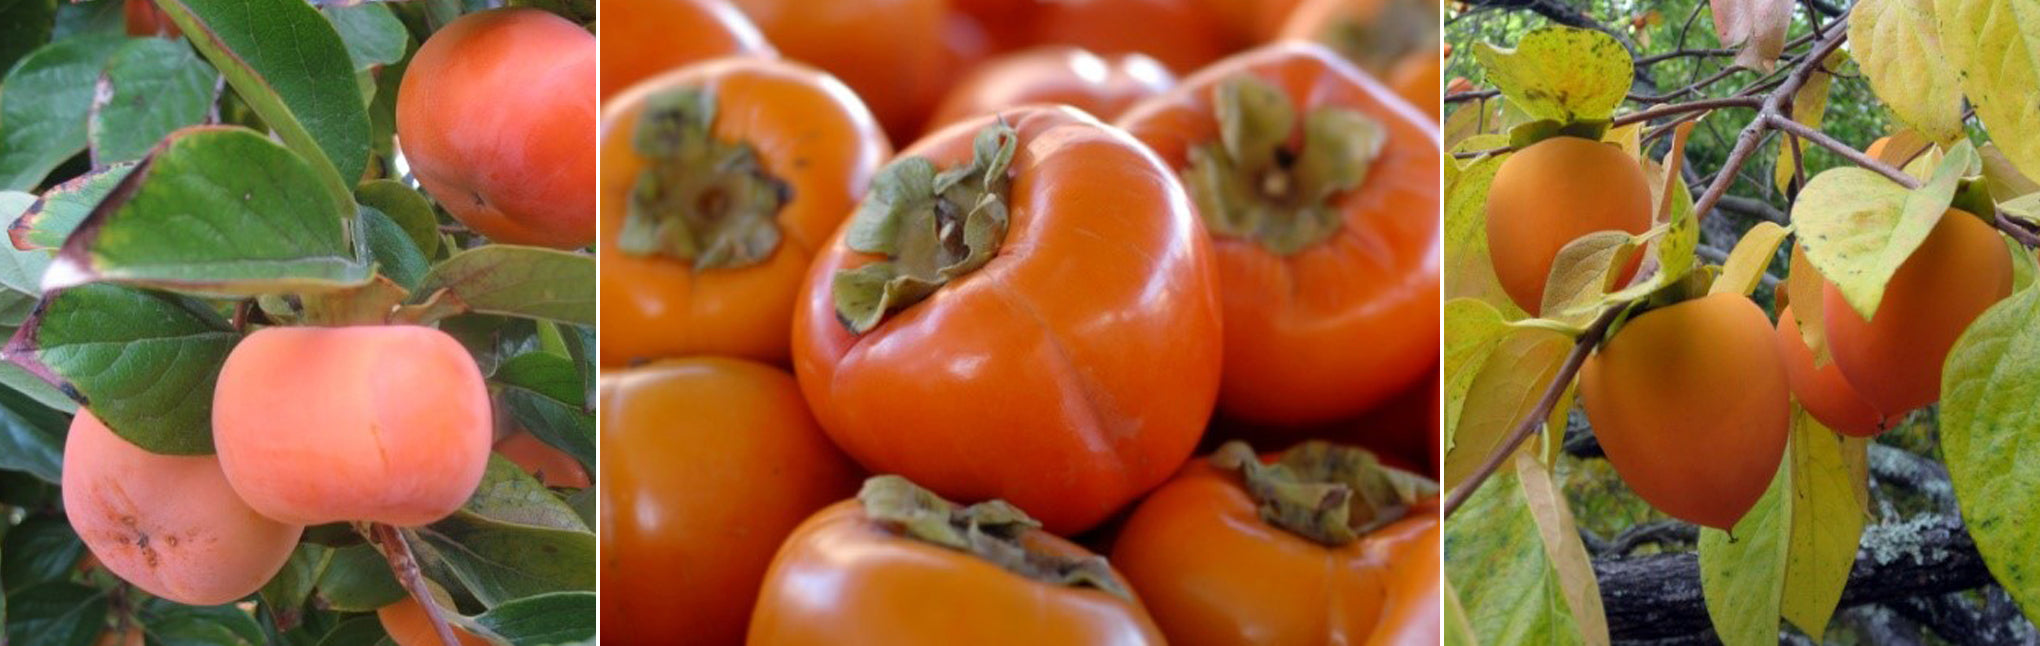 8 important stages of growing persimmon from the stone 53